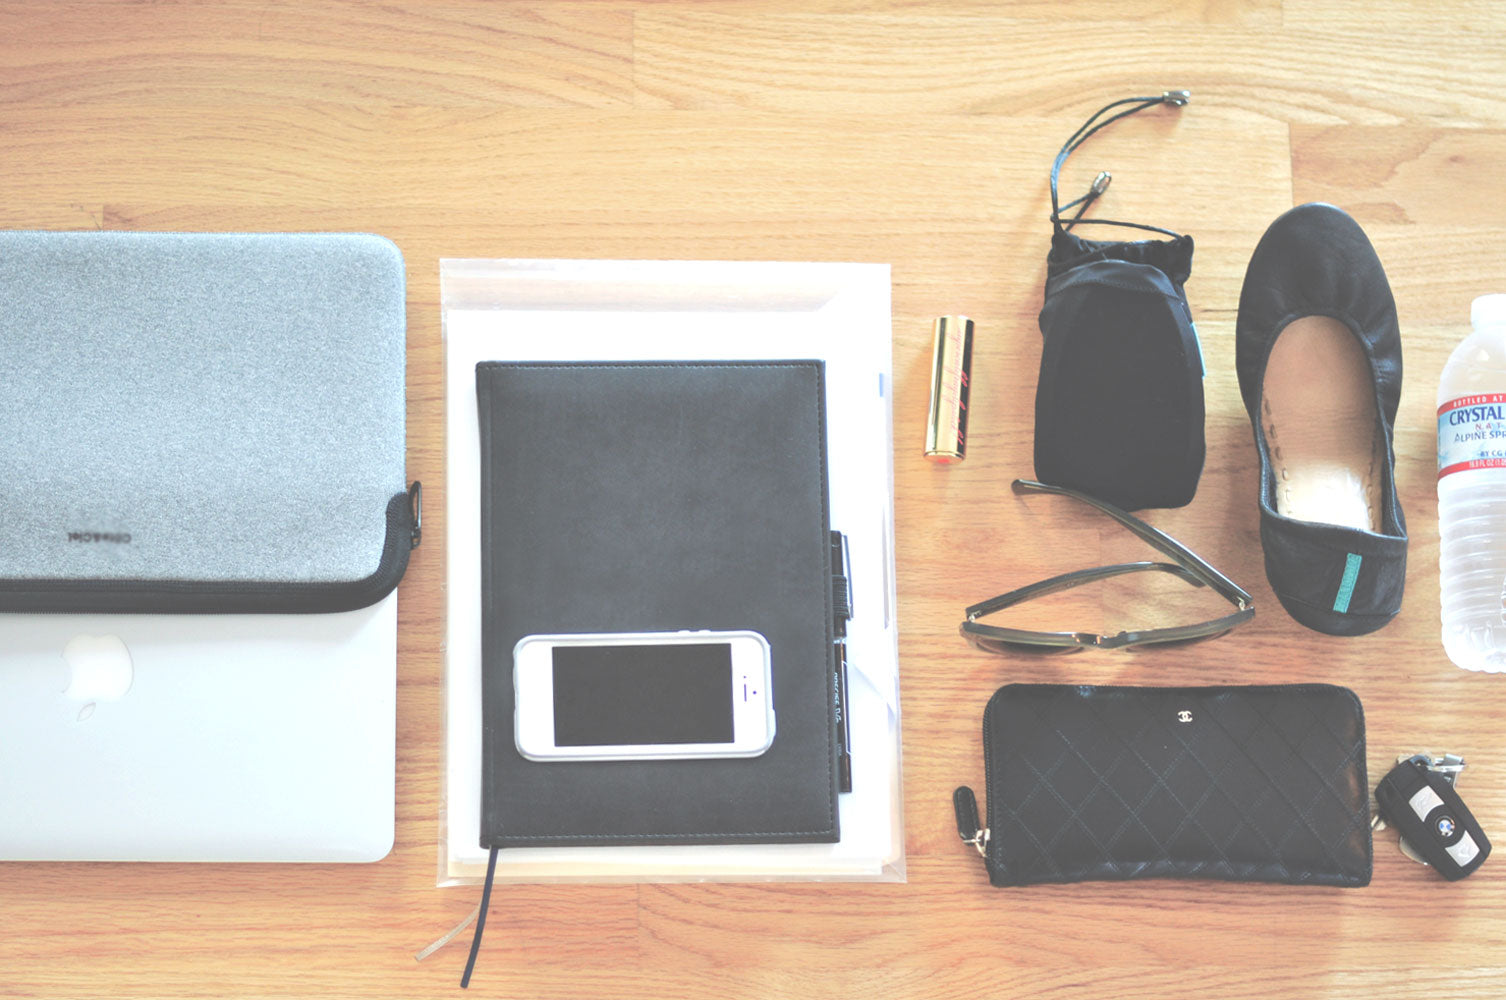 9to5Chic shares what's inside her leather laptop tote